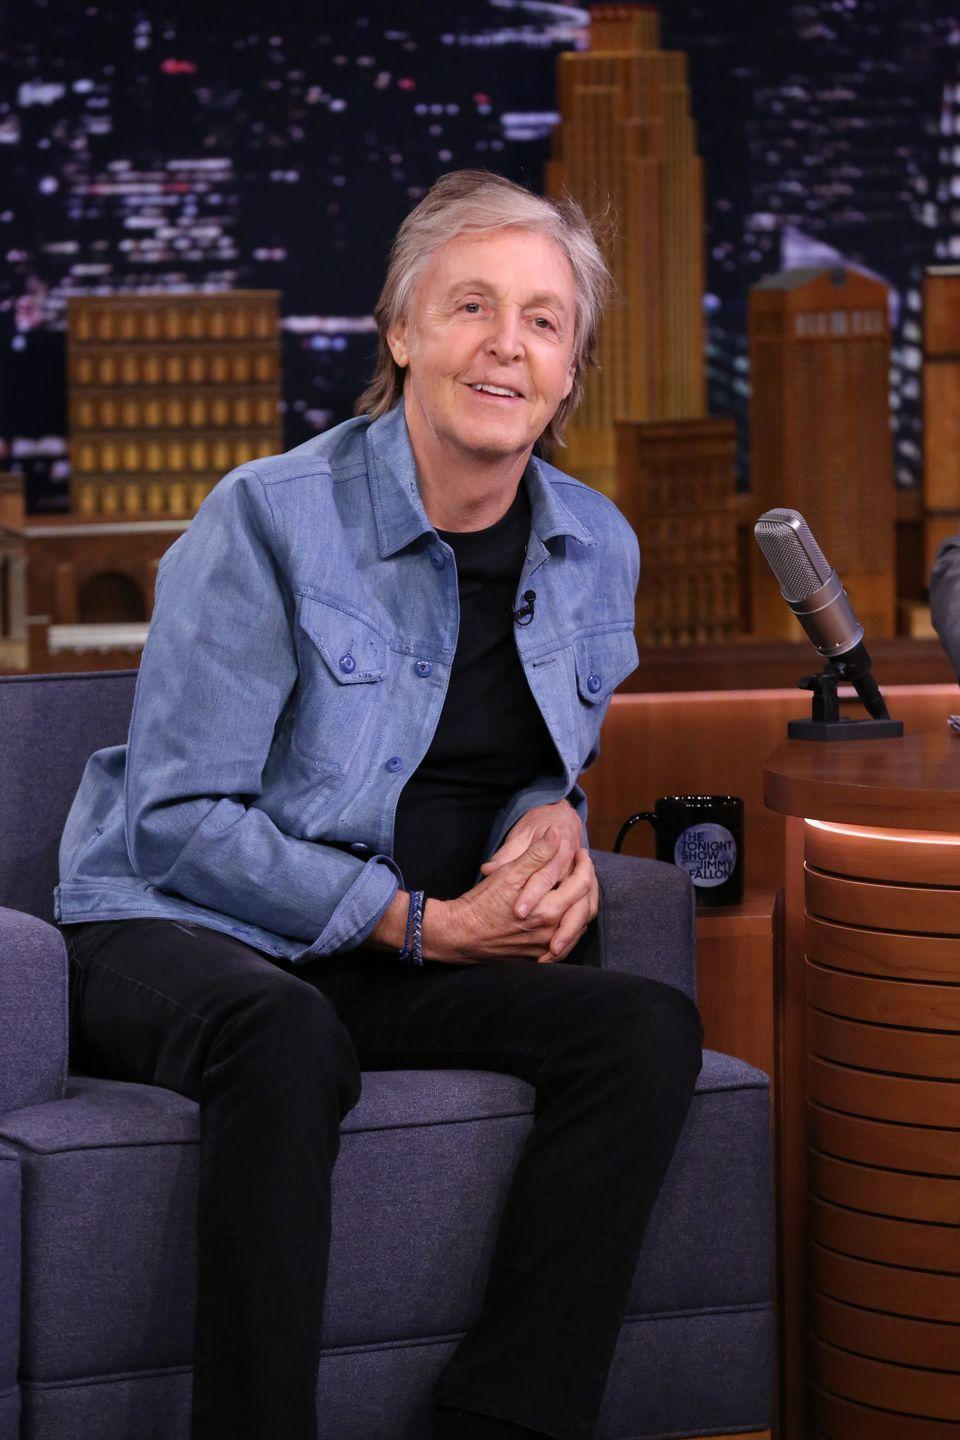 <p>Even after almost 60 years, McCartney is still releasing new music, including—most recently—2018's <em>Egypt Station. </em></p>